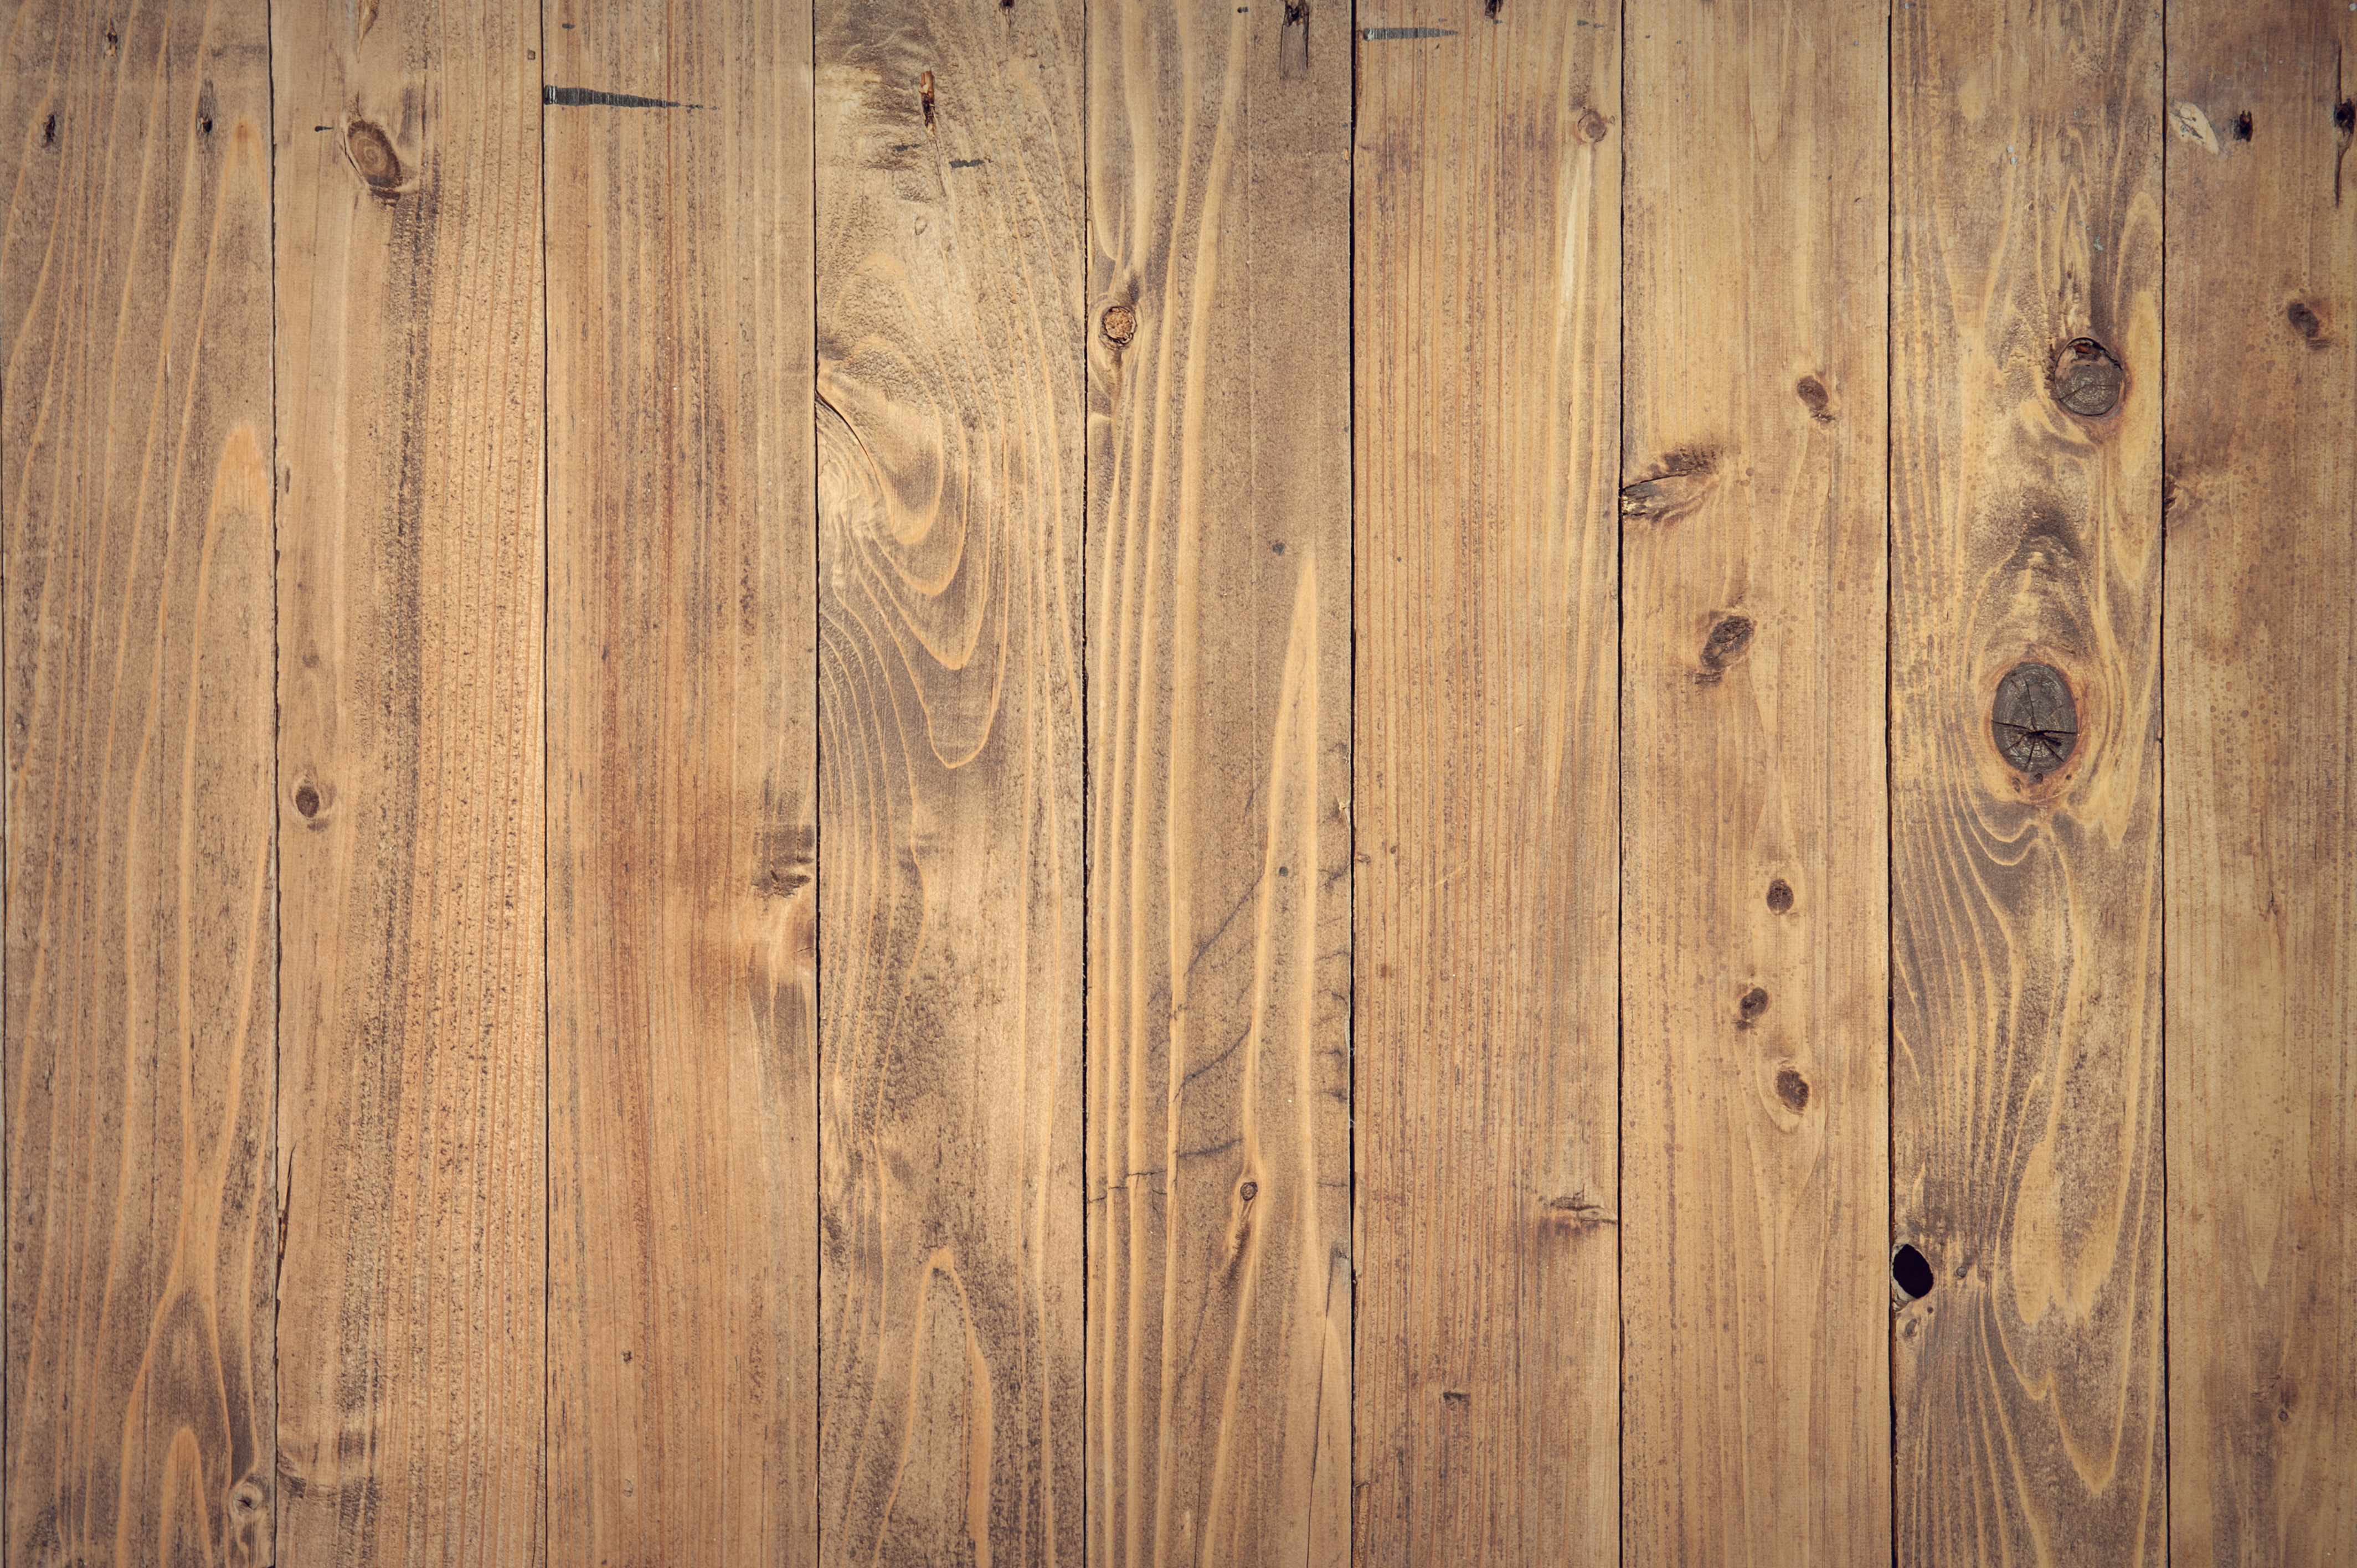 Free stock photos of wooden table · Pexels